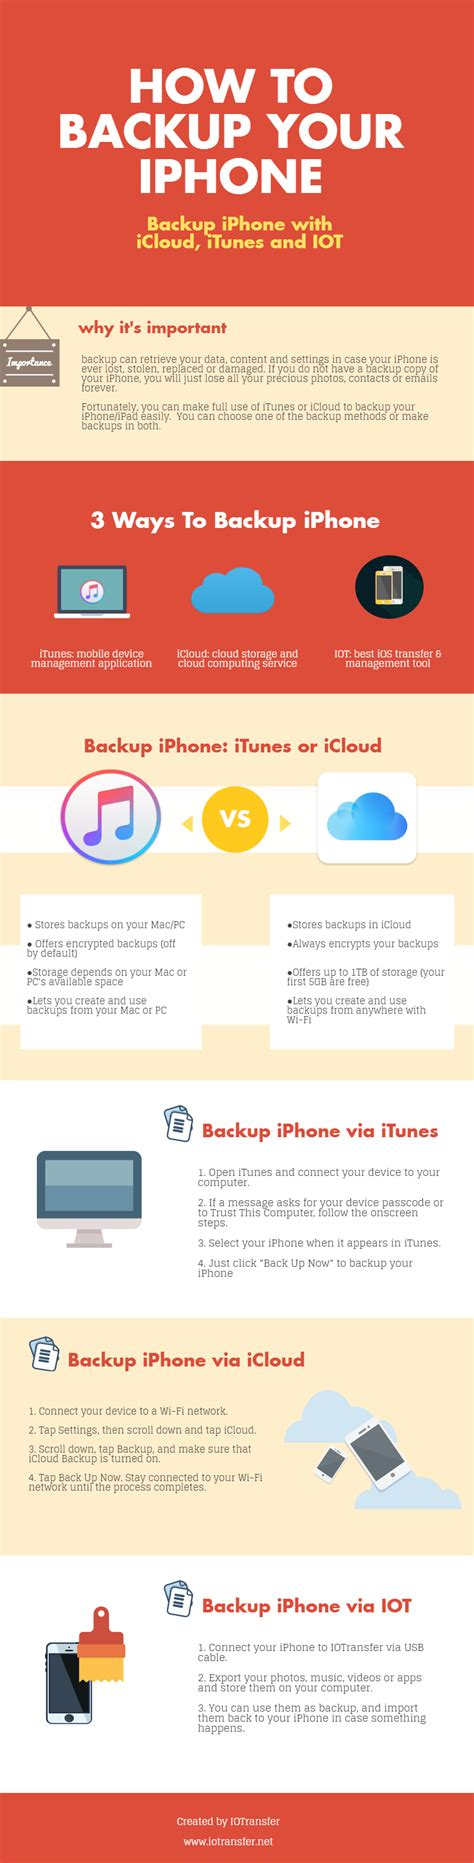 How To Backup Your Iphone  Infographic. Waterproofing Contractors Association. Equifax Identity Theft Alert. Product Information Software. Credit Card Without Social Security. New York Salary Calculator Voip Phone Setup. Online Computer Back Up Html5 App Development. Hospital Administration Degree Programs. Deschutes Veterinary Clinic Mug And Saucer